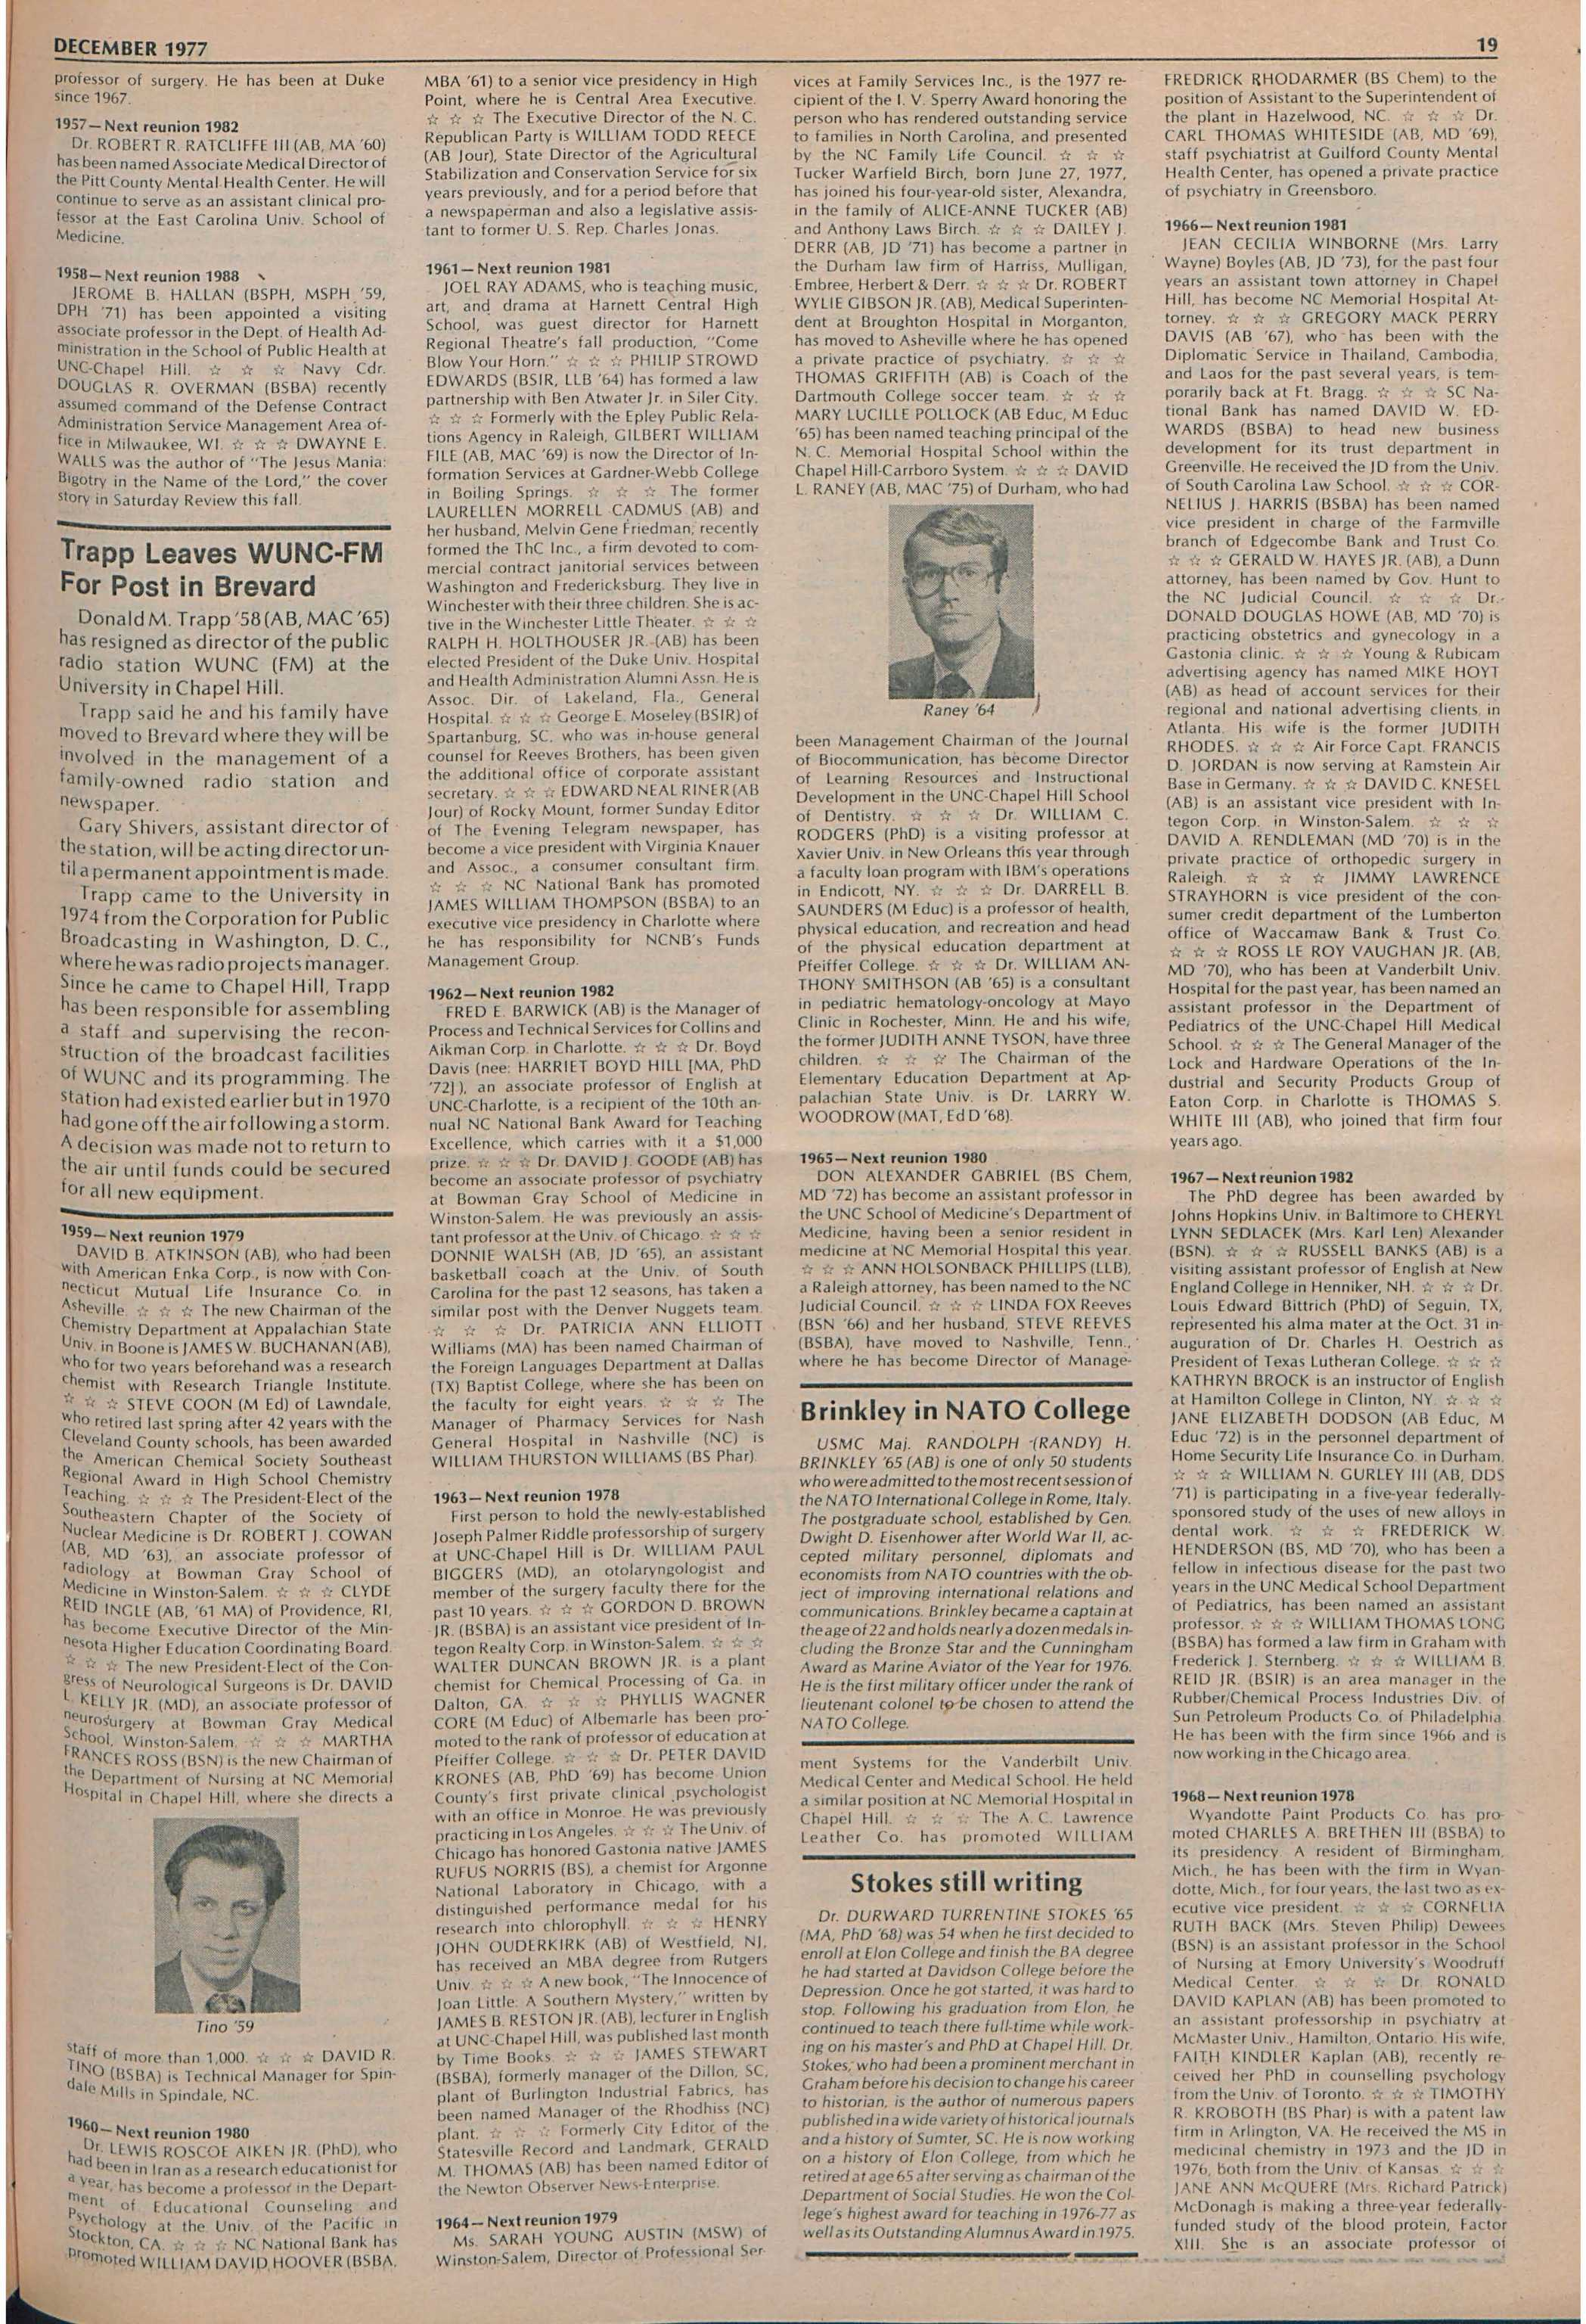 The University Report - December 1977 - page 20